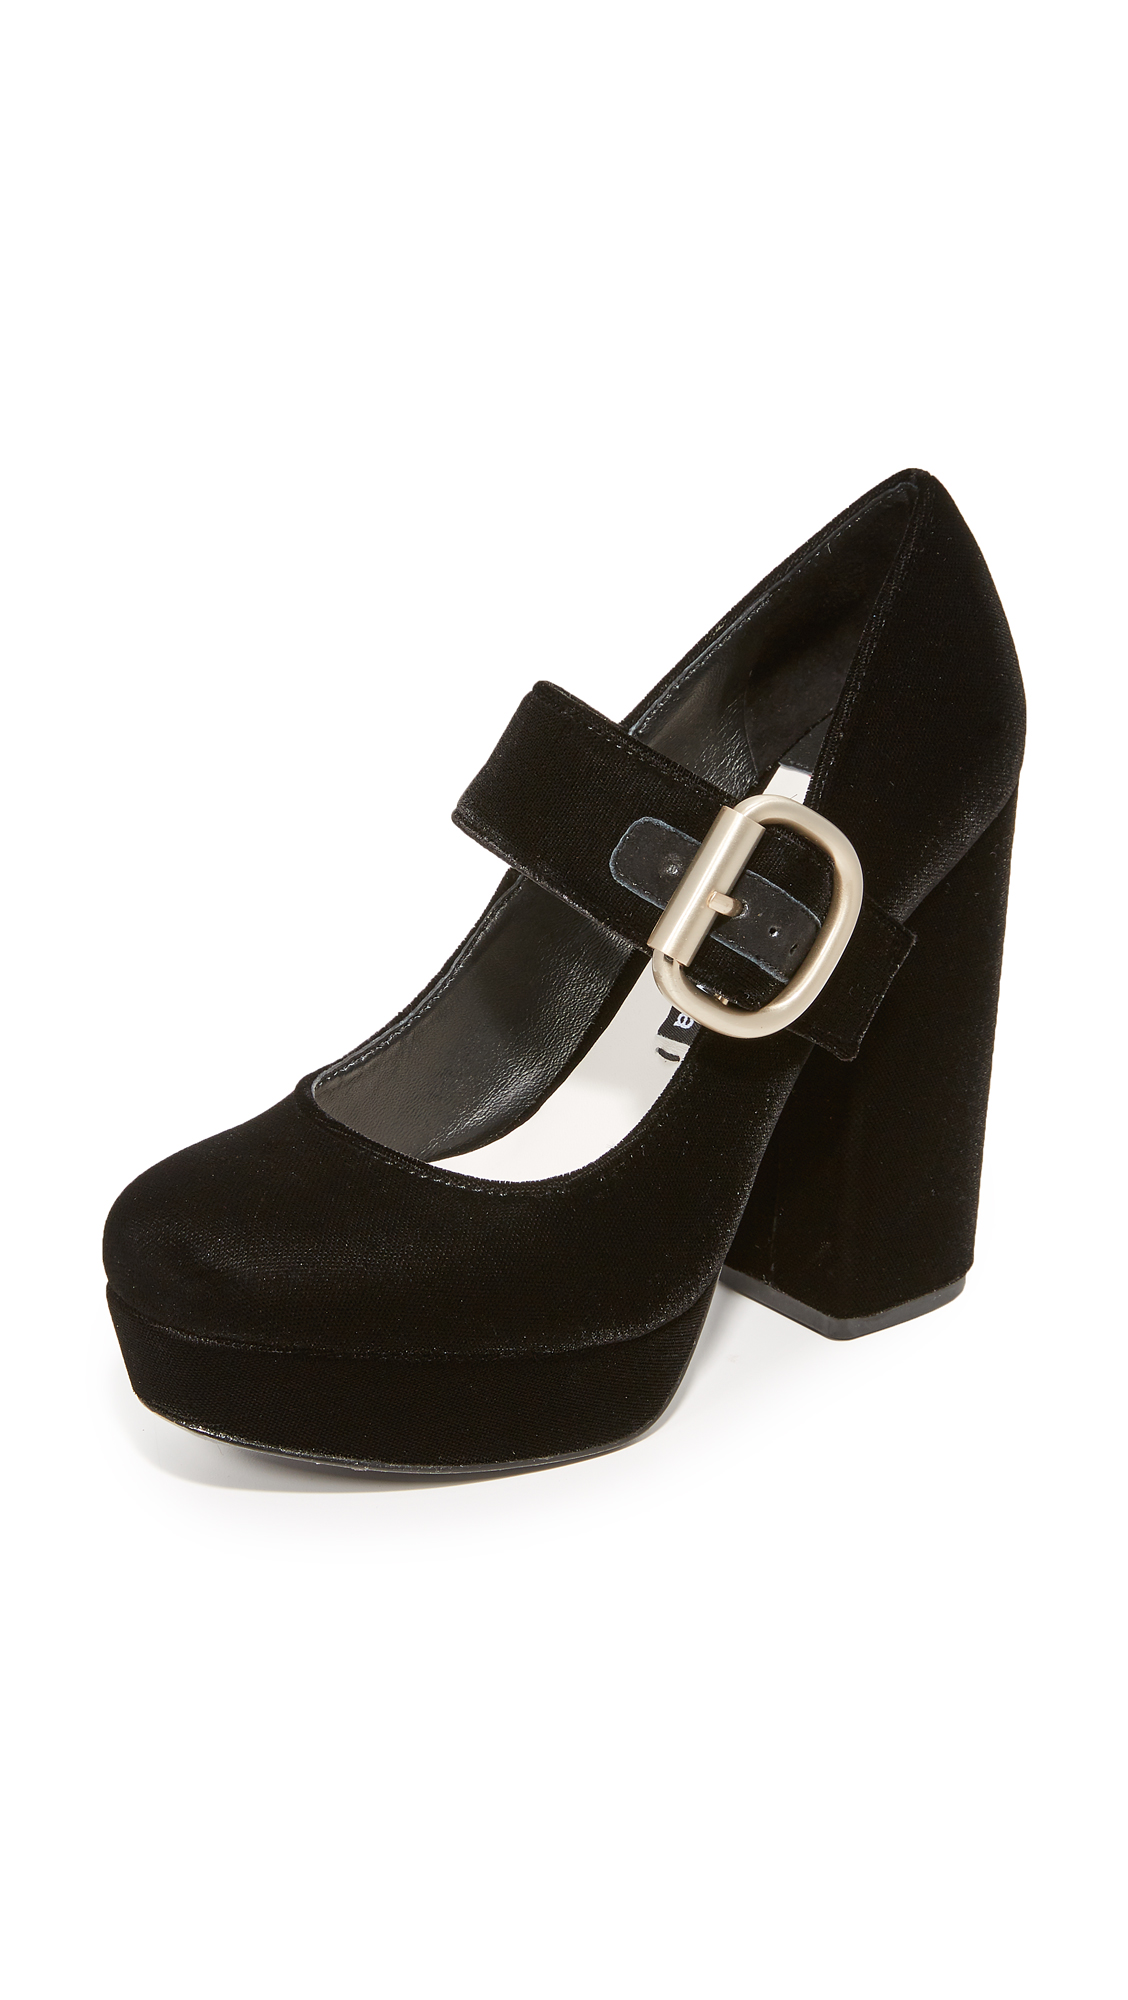 alice + olivia Houston Platform Mary Jane Pumps - Black